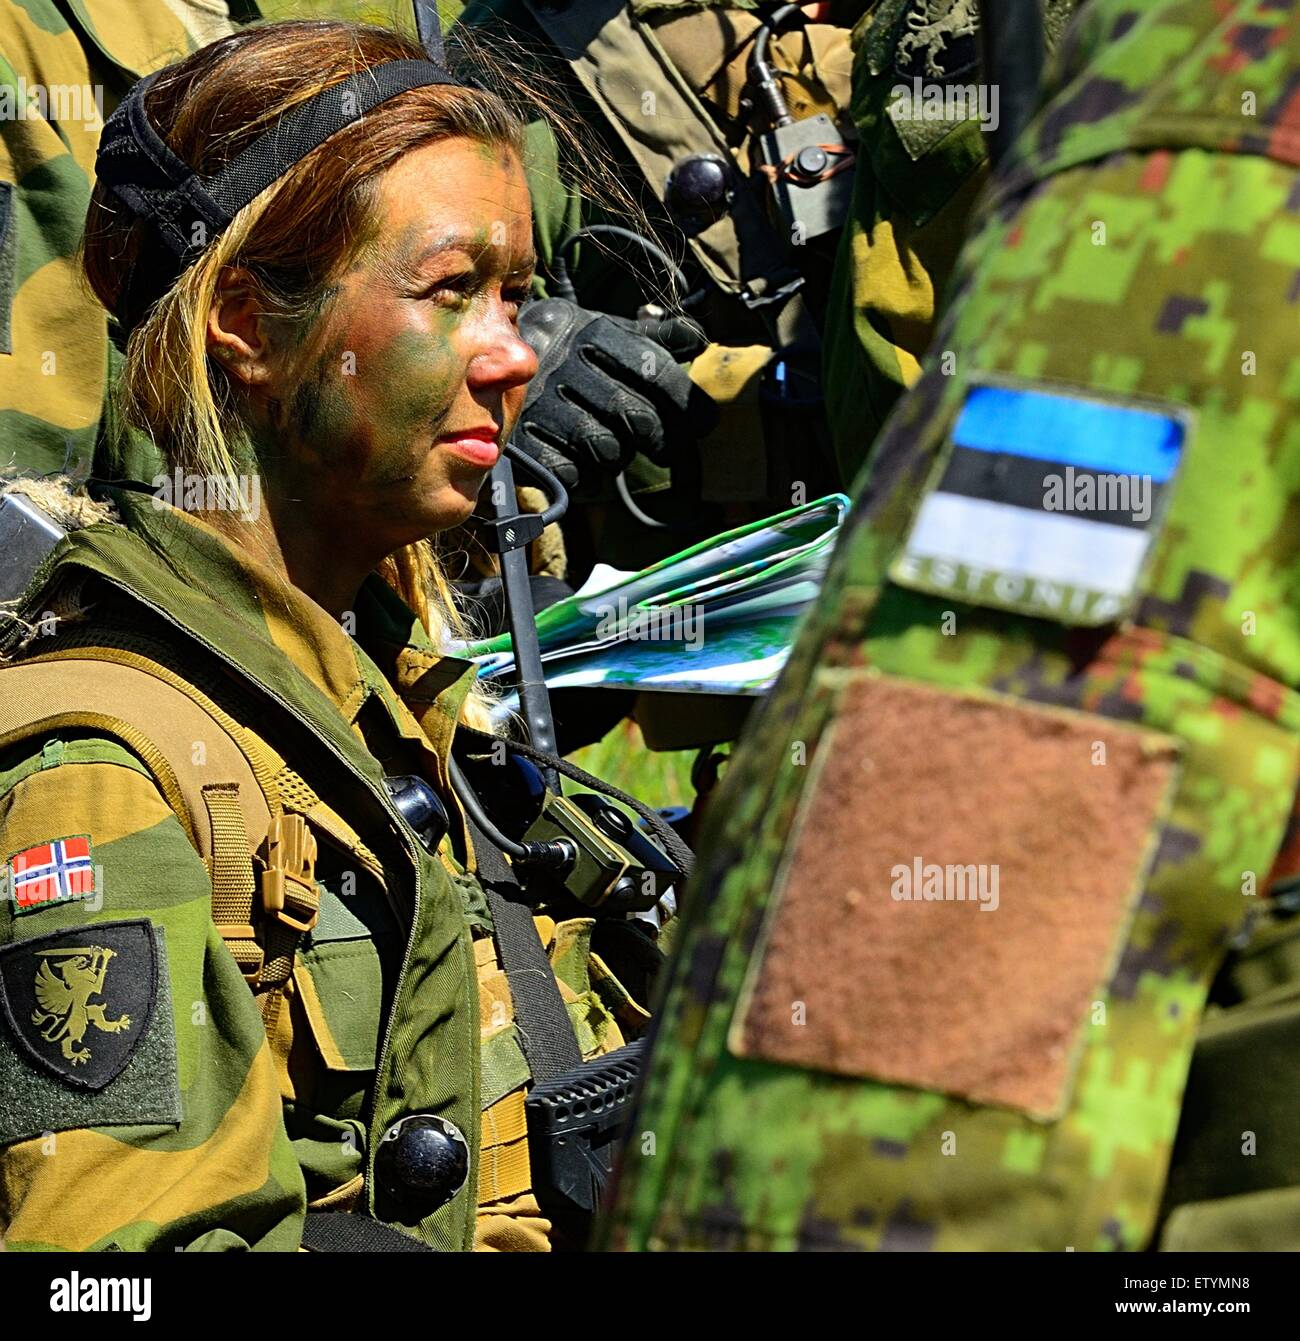 Norwegian Army High Resolution Stock Photography And Images Alamy